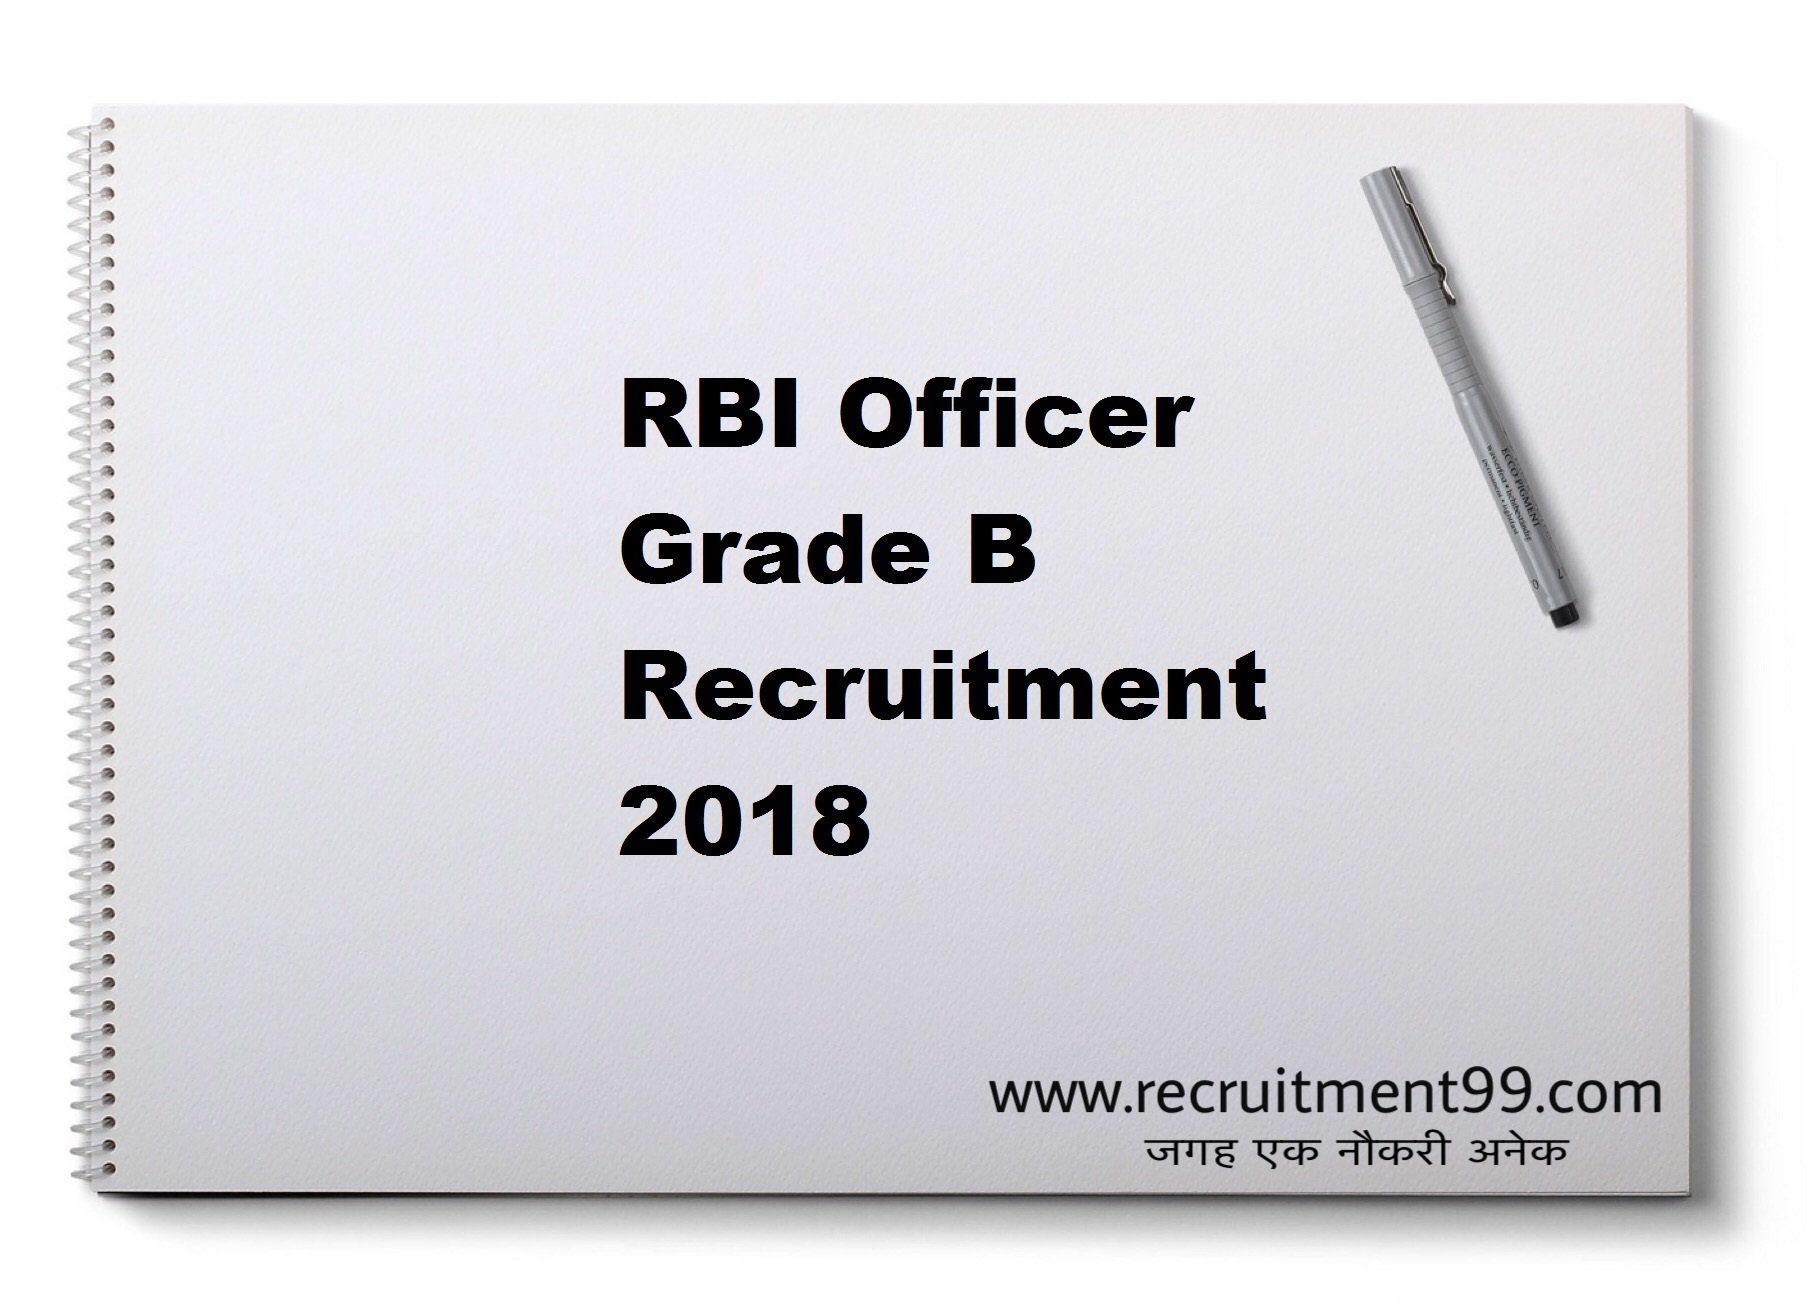 RBI Officer Grade B Recruitment Admit Card Result 2018